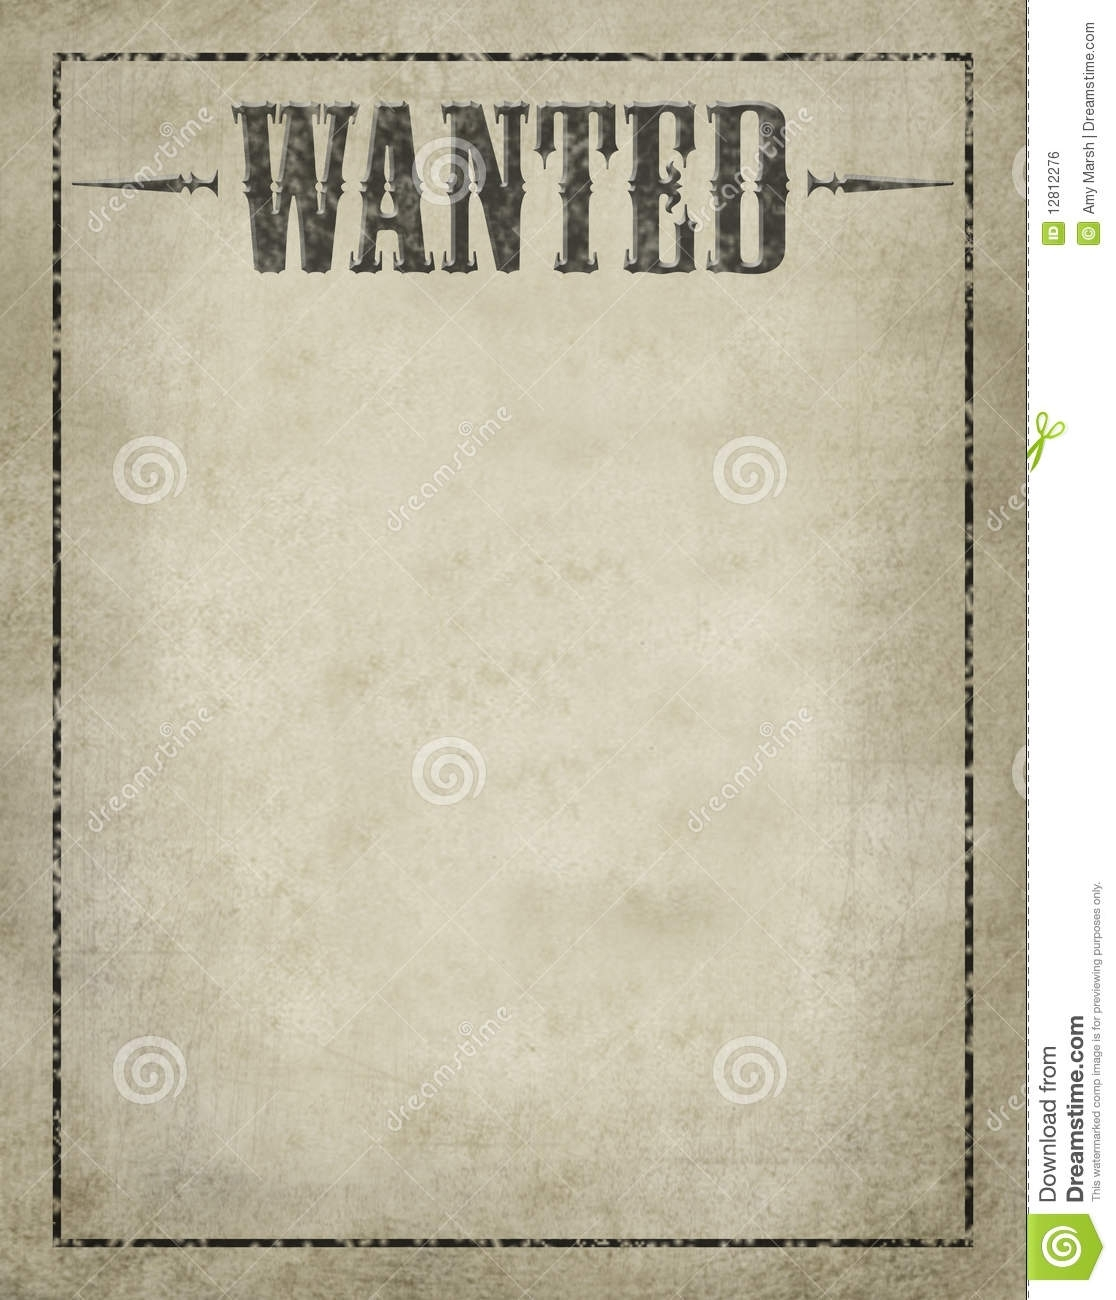 004 Template Printable Wanted Poster Most Free Fbi Word Impressive in Free Printable Wanted Poster Template